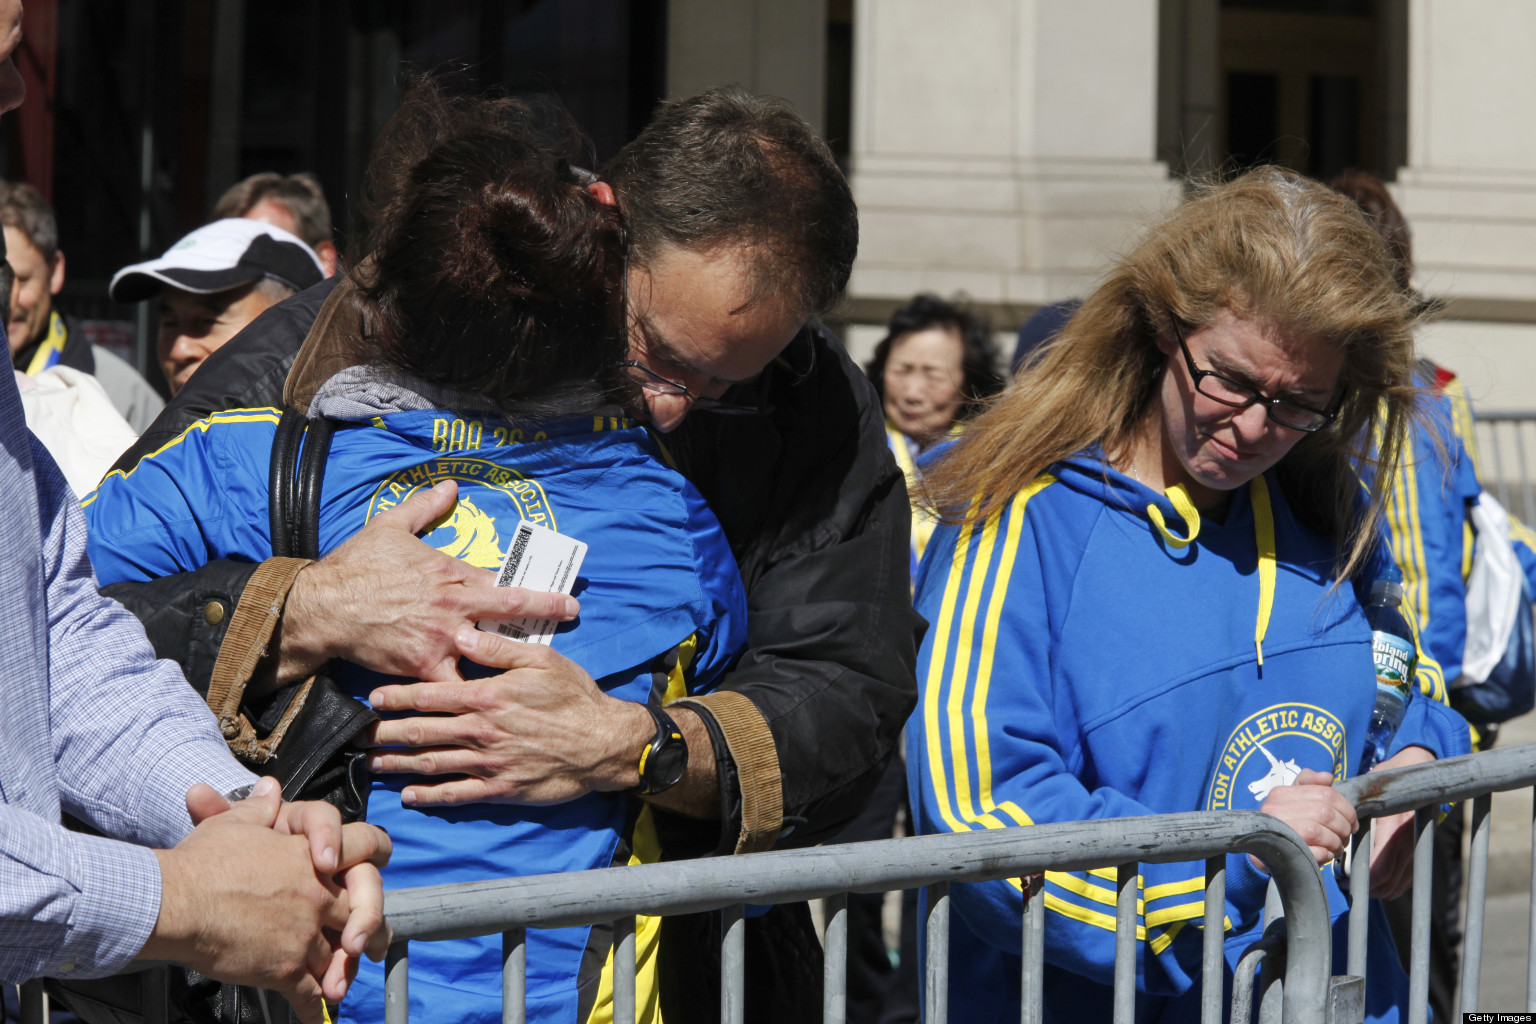 Charity Scams Crop Up In Wake Of Boston Marathon Explosions